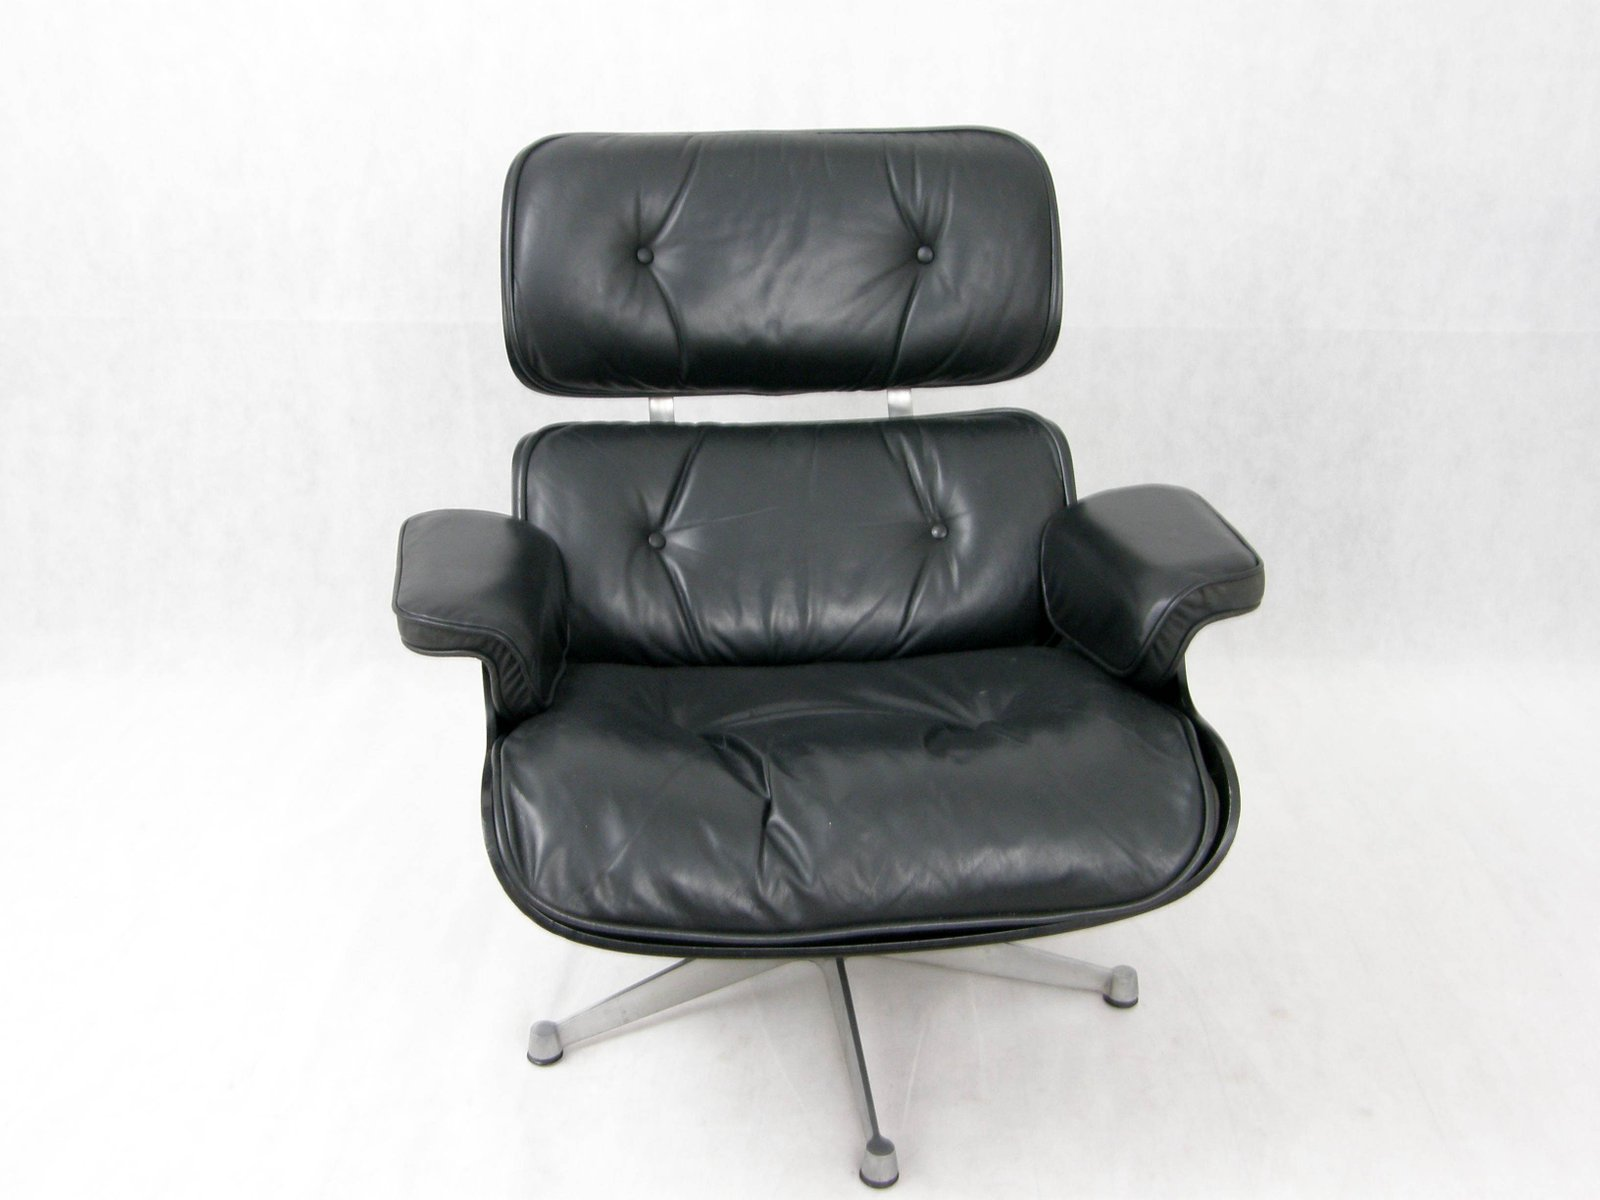 Lounge chair by charles ray eames for icf 1970s for for Charles eames lounge chair preisvergleich